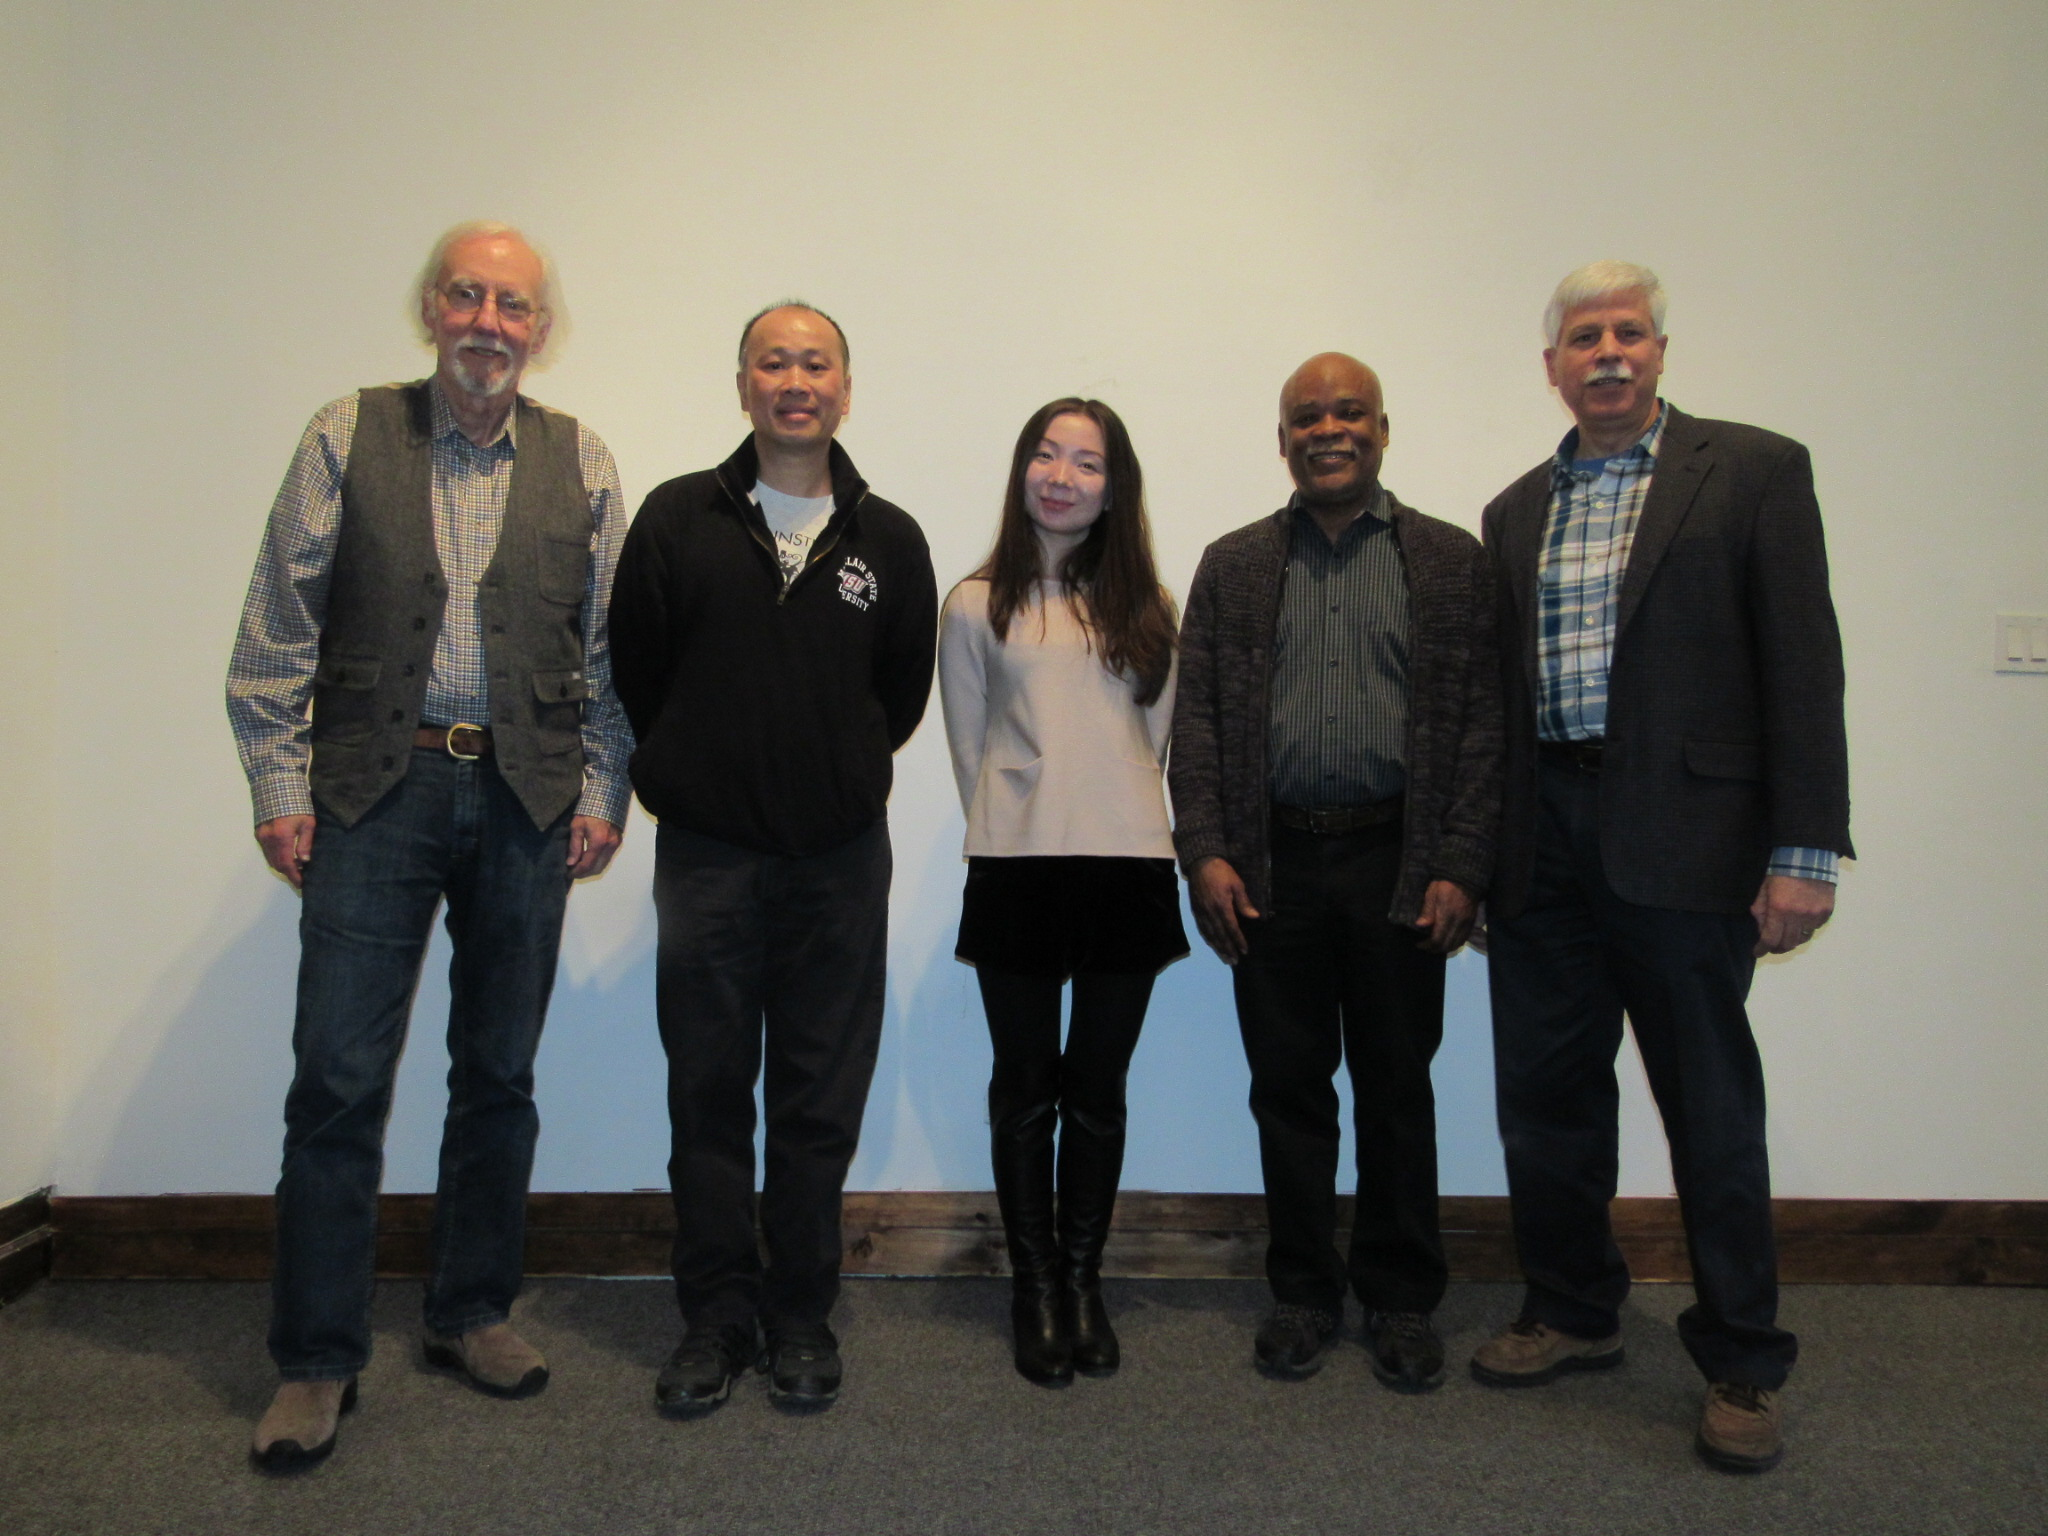 The cast for the 2018 Board, (L-R) Vern Ford, Tom Wong, Aika Mukhambetova, Gil Gerald, and Tom Wong, exits stage right